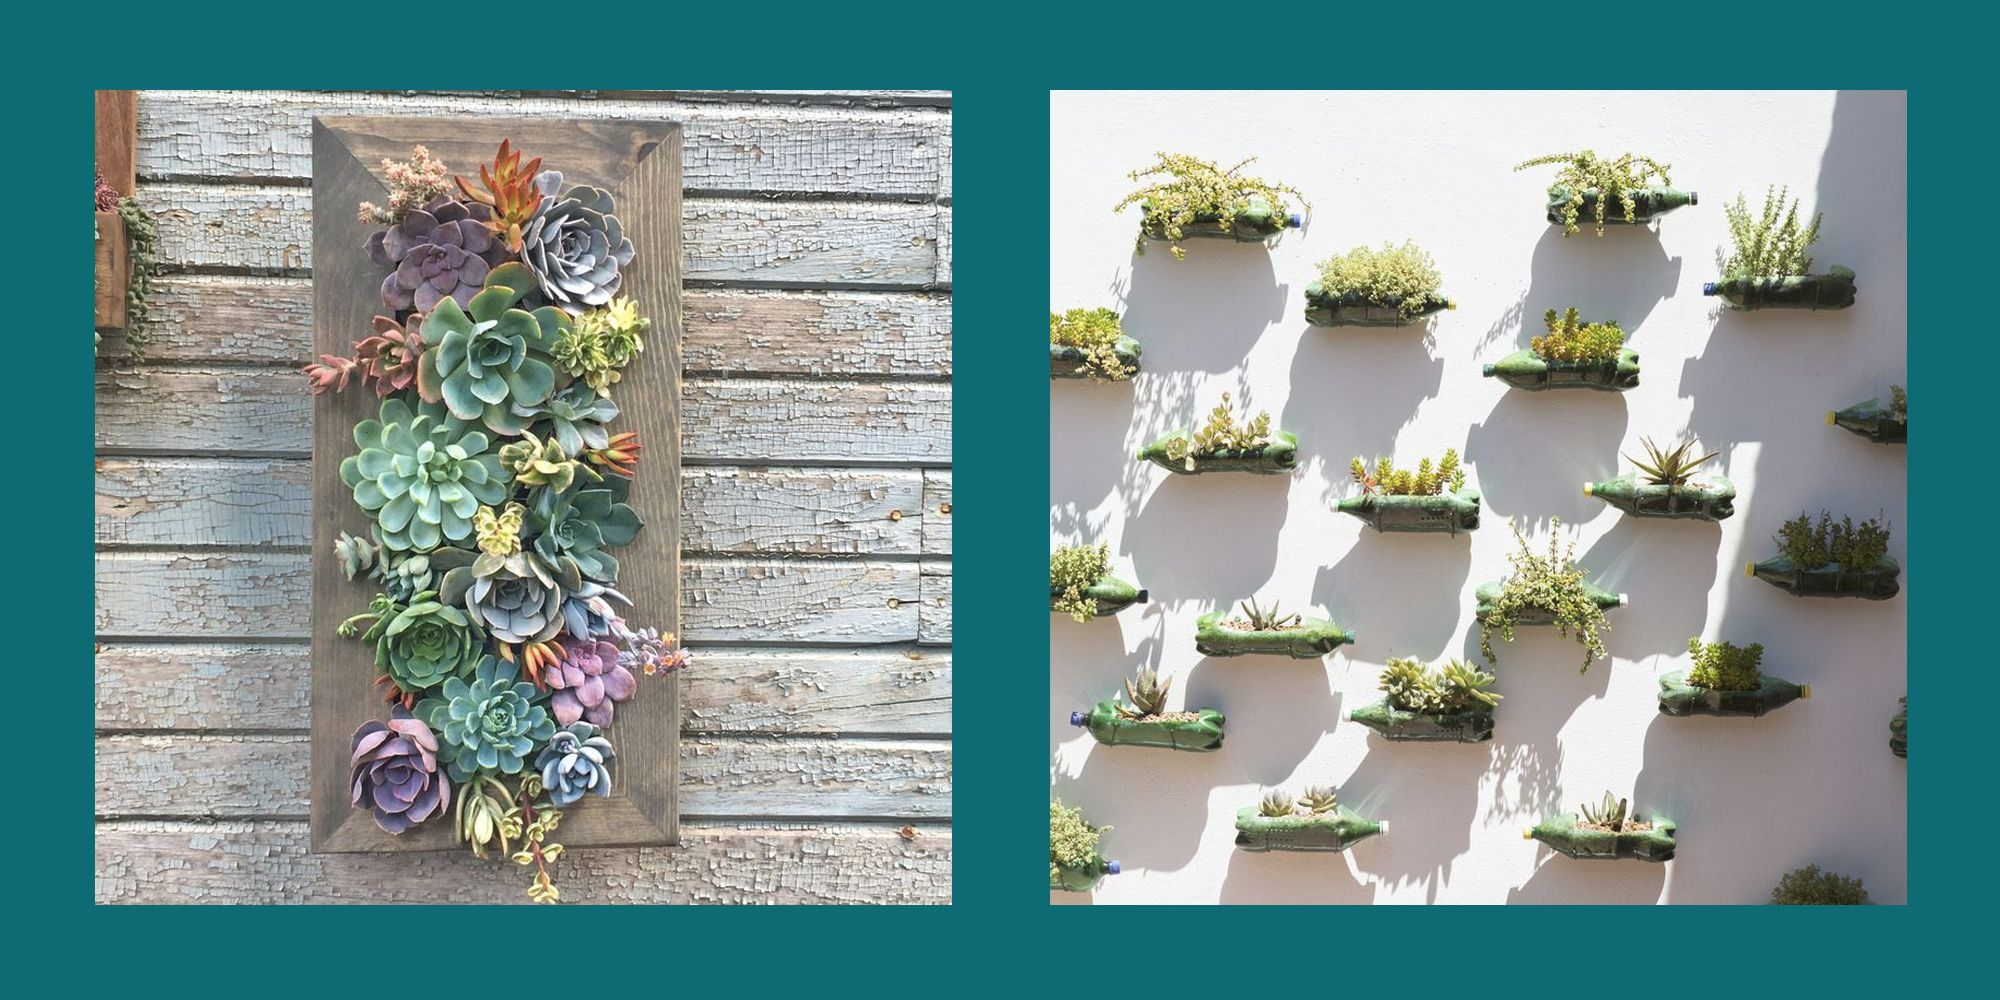 20 Brilliant Vertical Garden Ideas Interesting Vertical